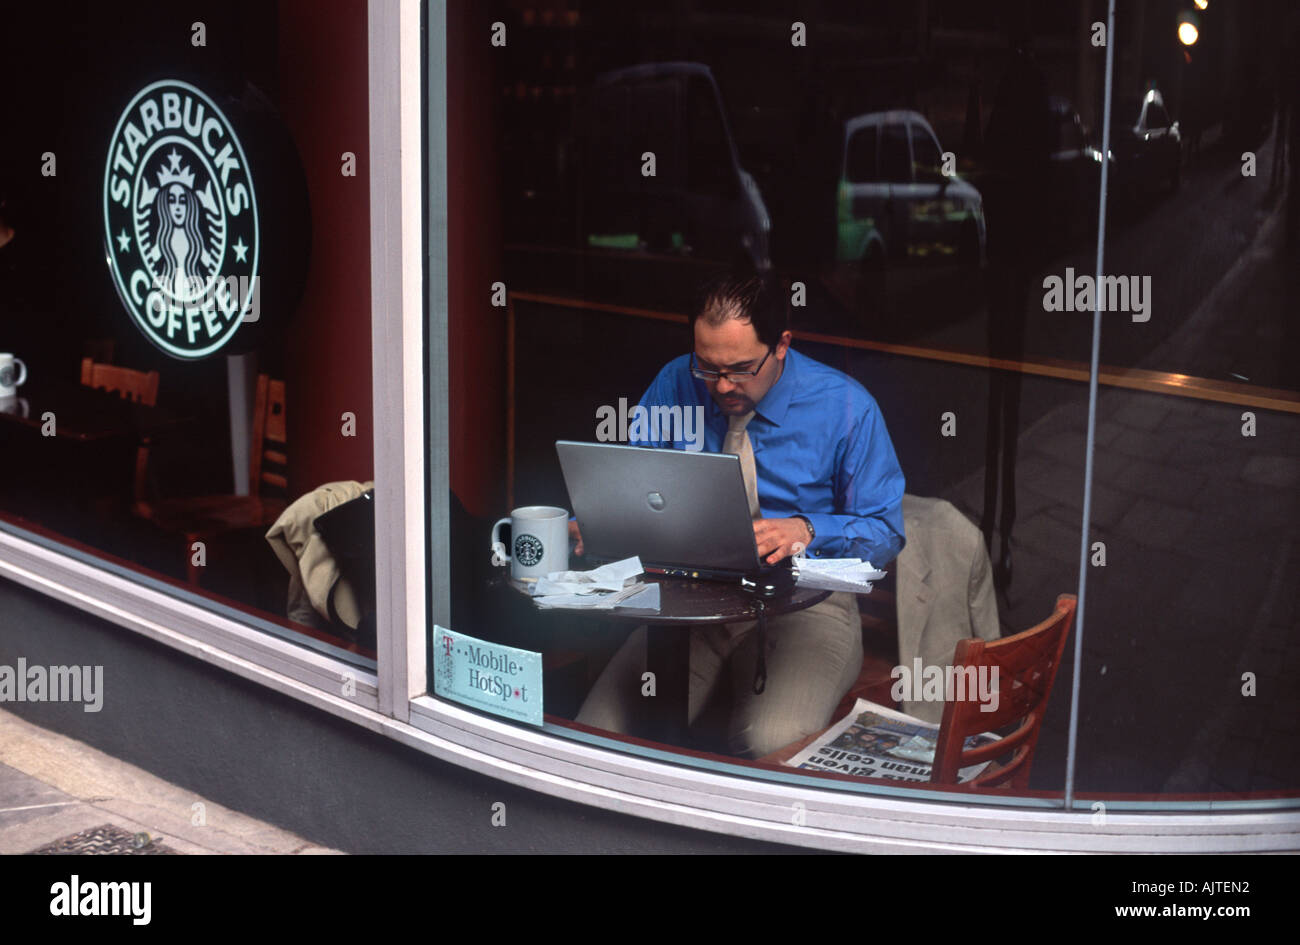 Wireless mobile worker: Man intently working at a laptop computer in the window of a coffee shop, City of London, England - Stock Image